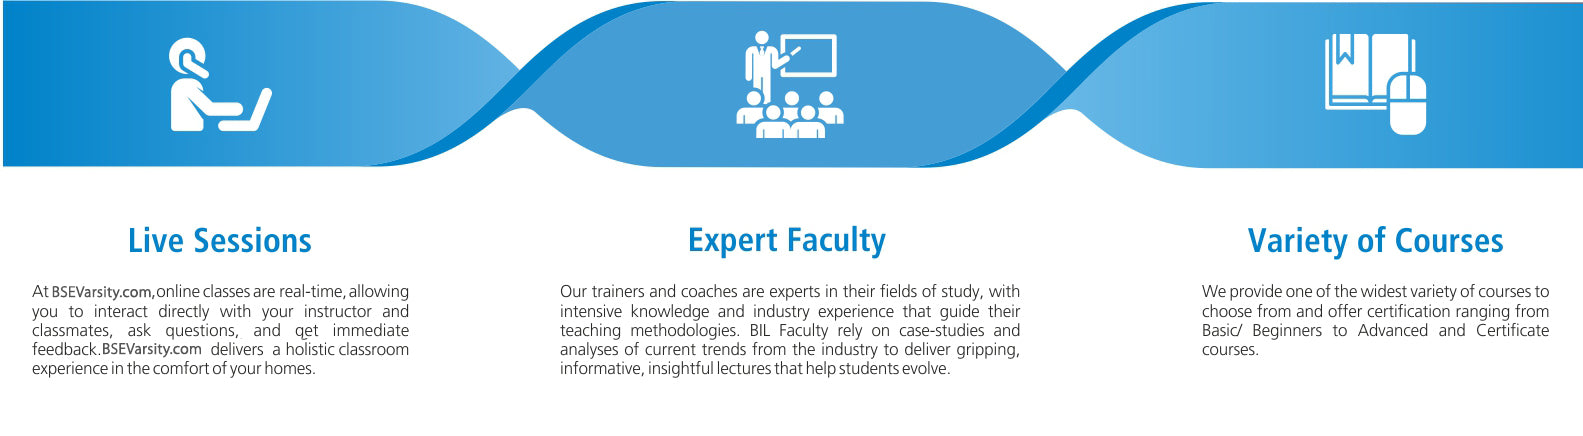 BSE Institute ltd Live Sessions, Expert Faculty, Online & Offline Courses